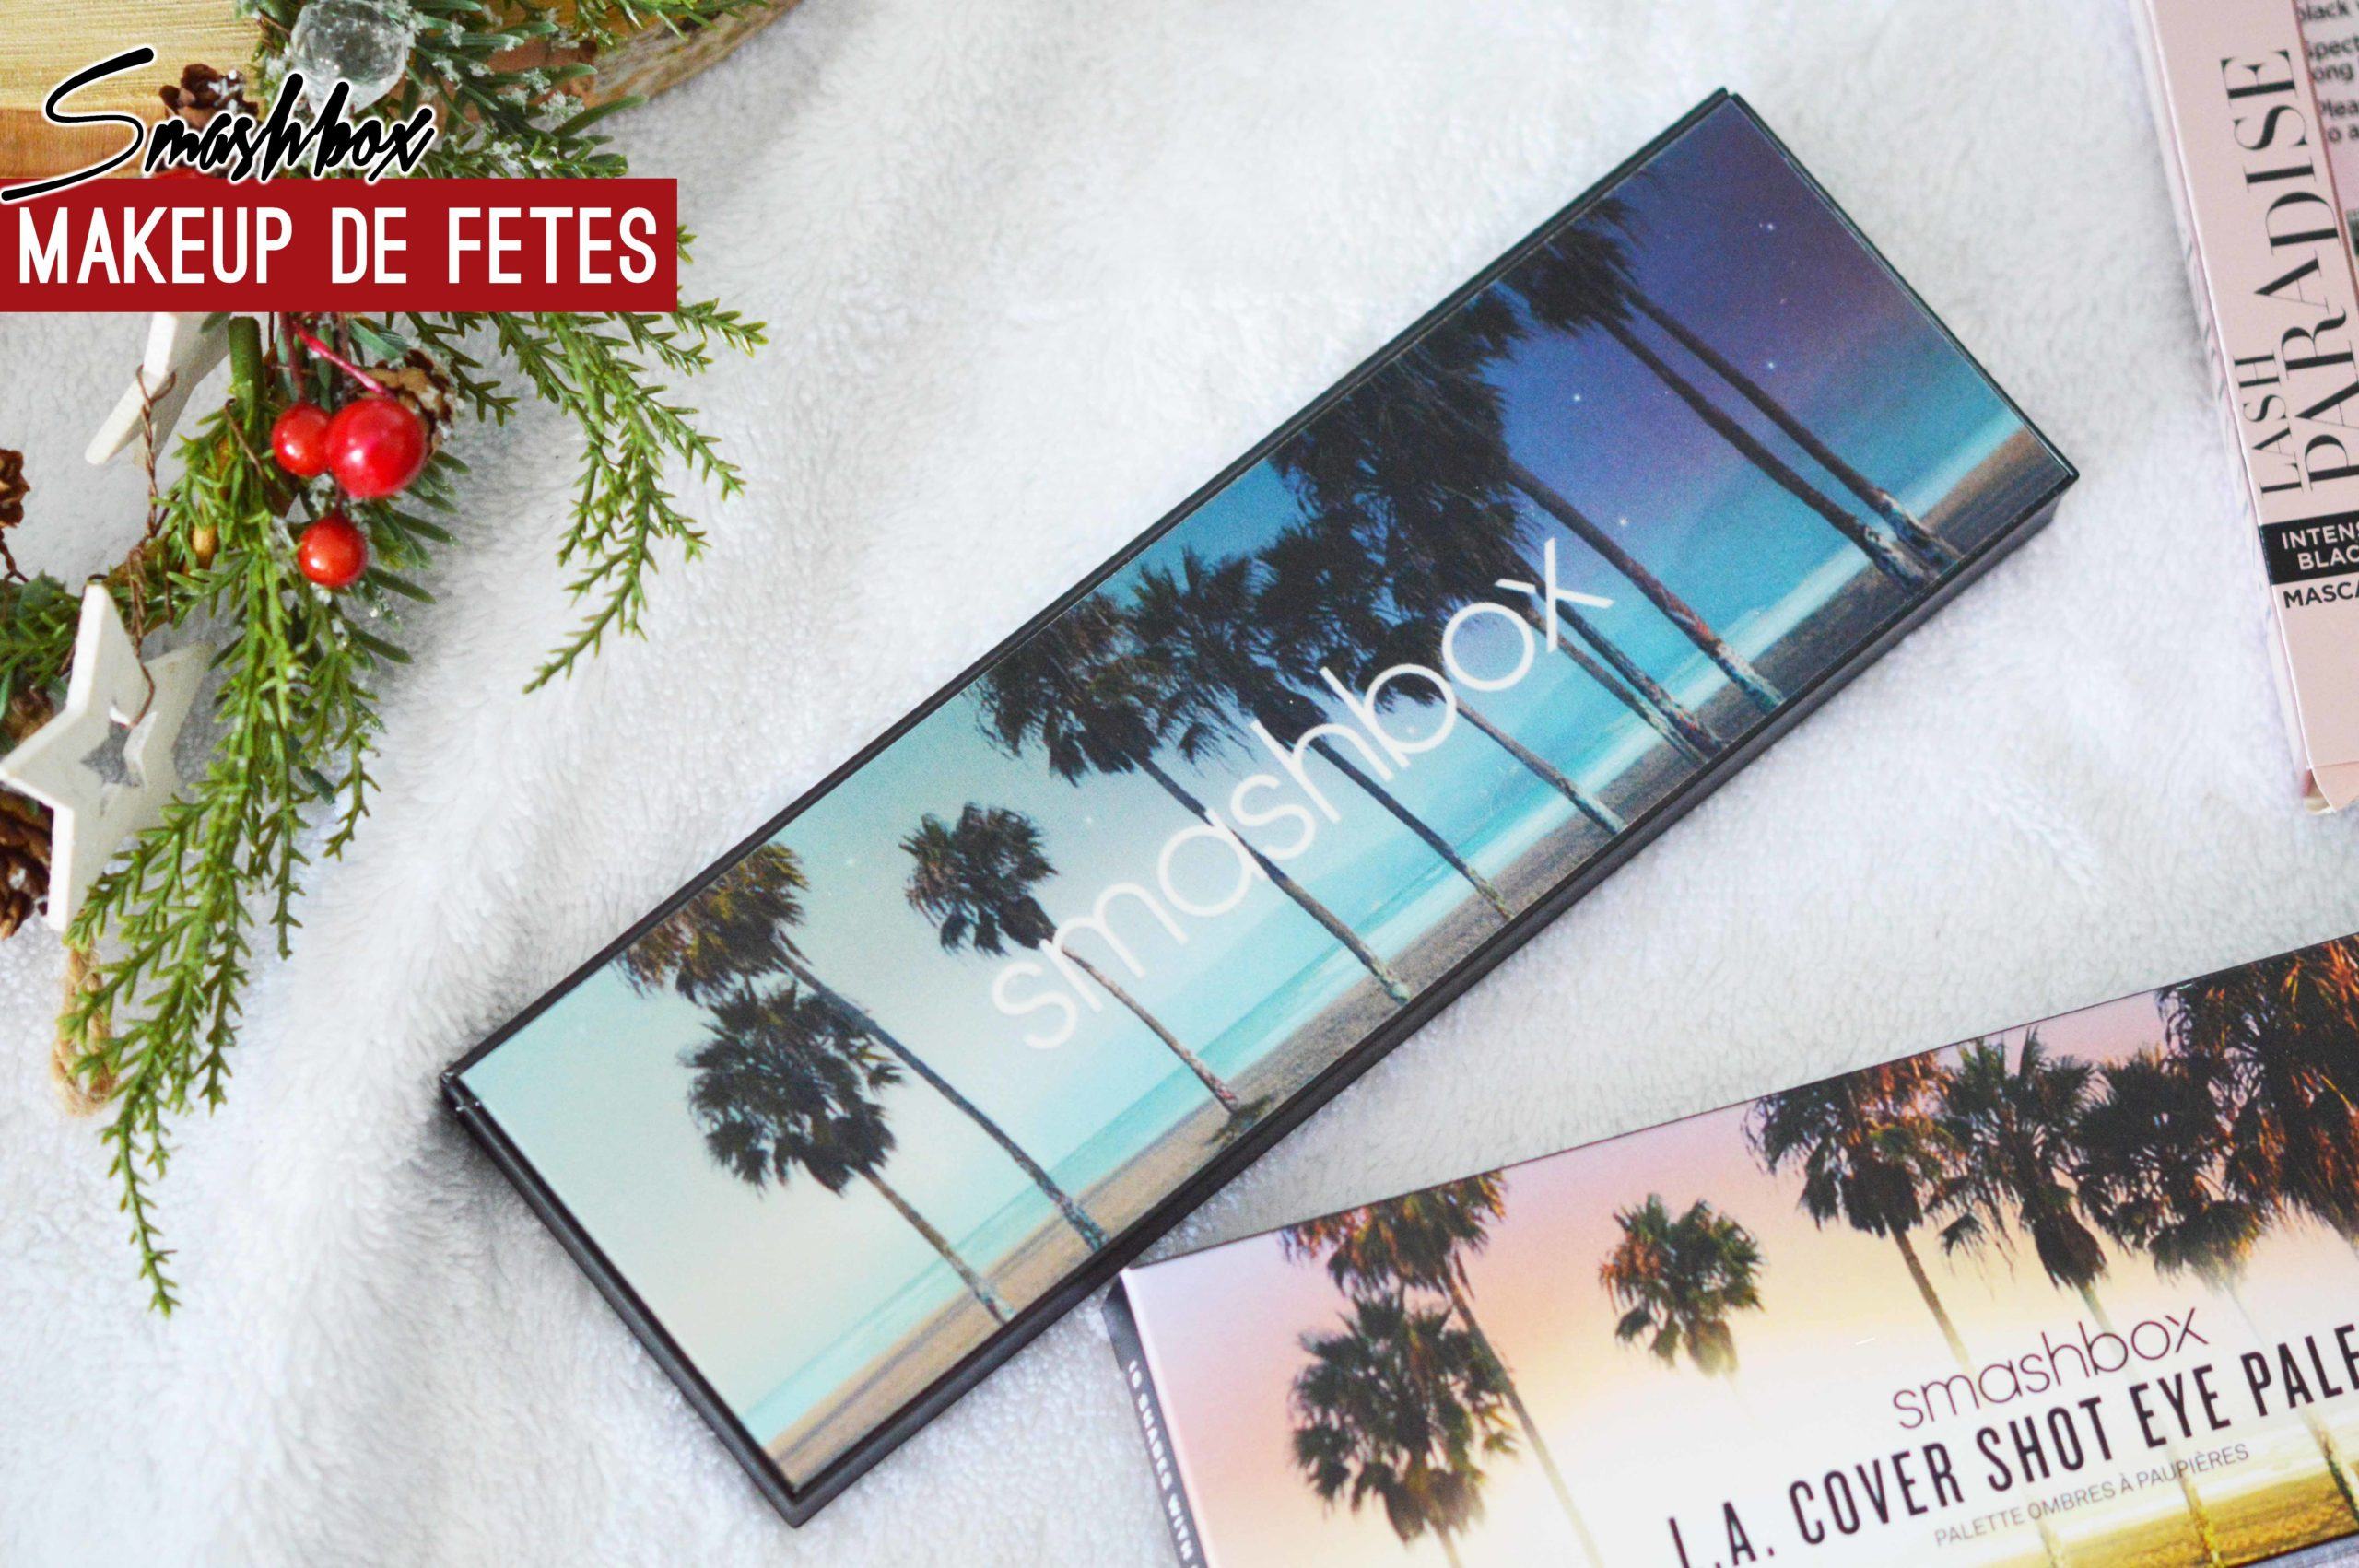 Focus sur le packaging de la palette L.A Cover Shot de Smashbox